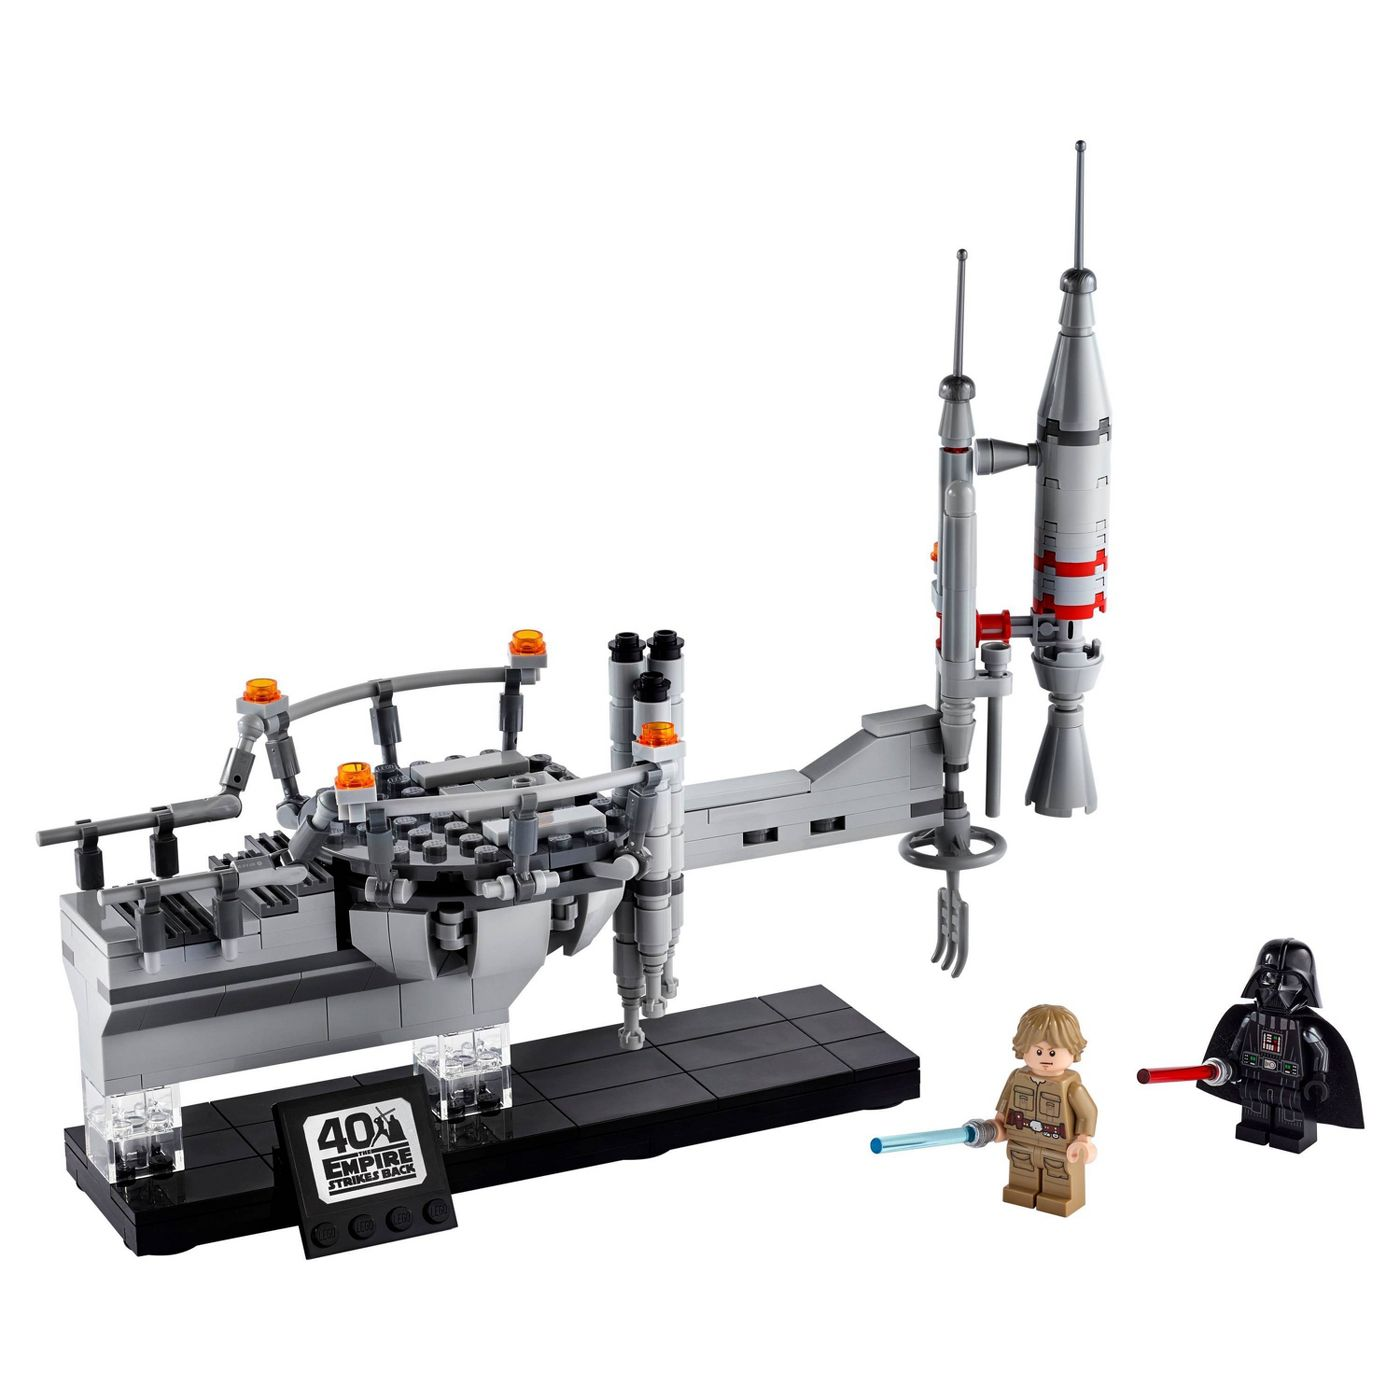 LEGO Star Wars Celebration The Bespin Duel 75294